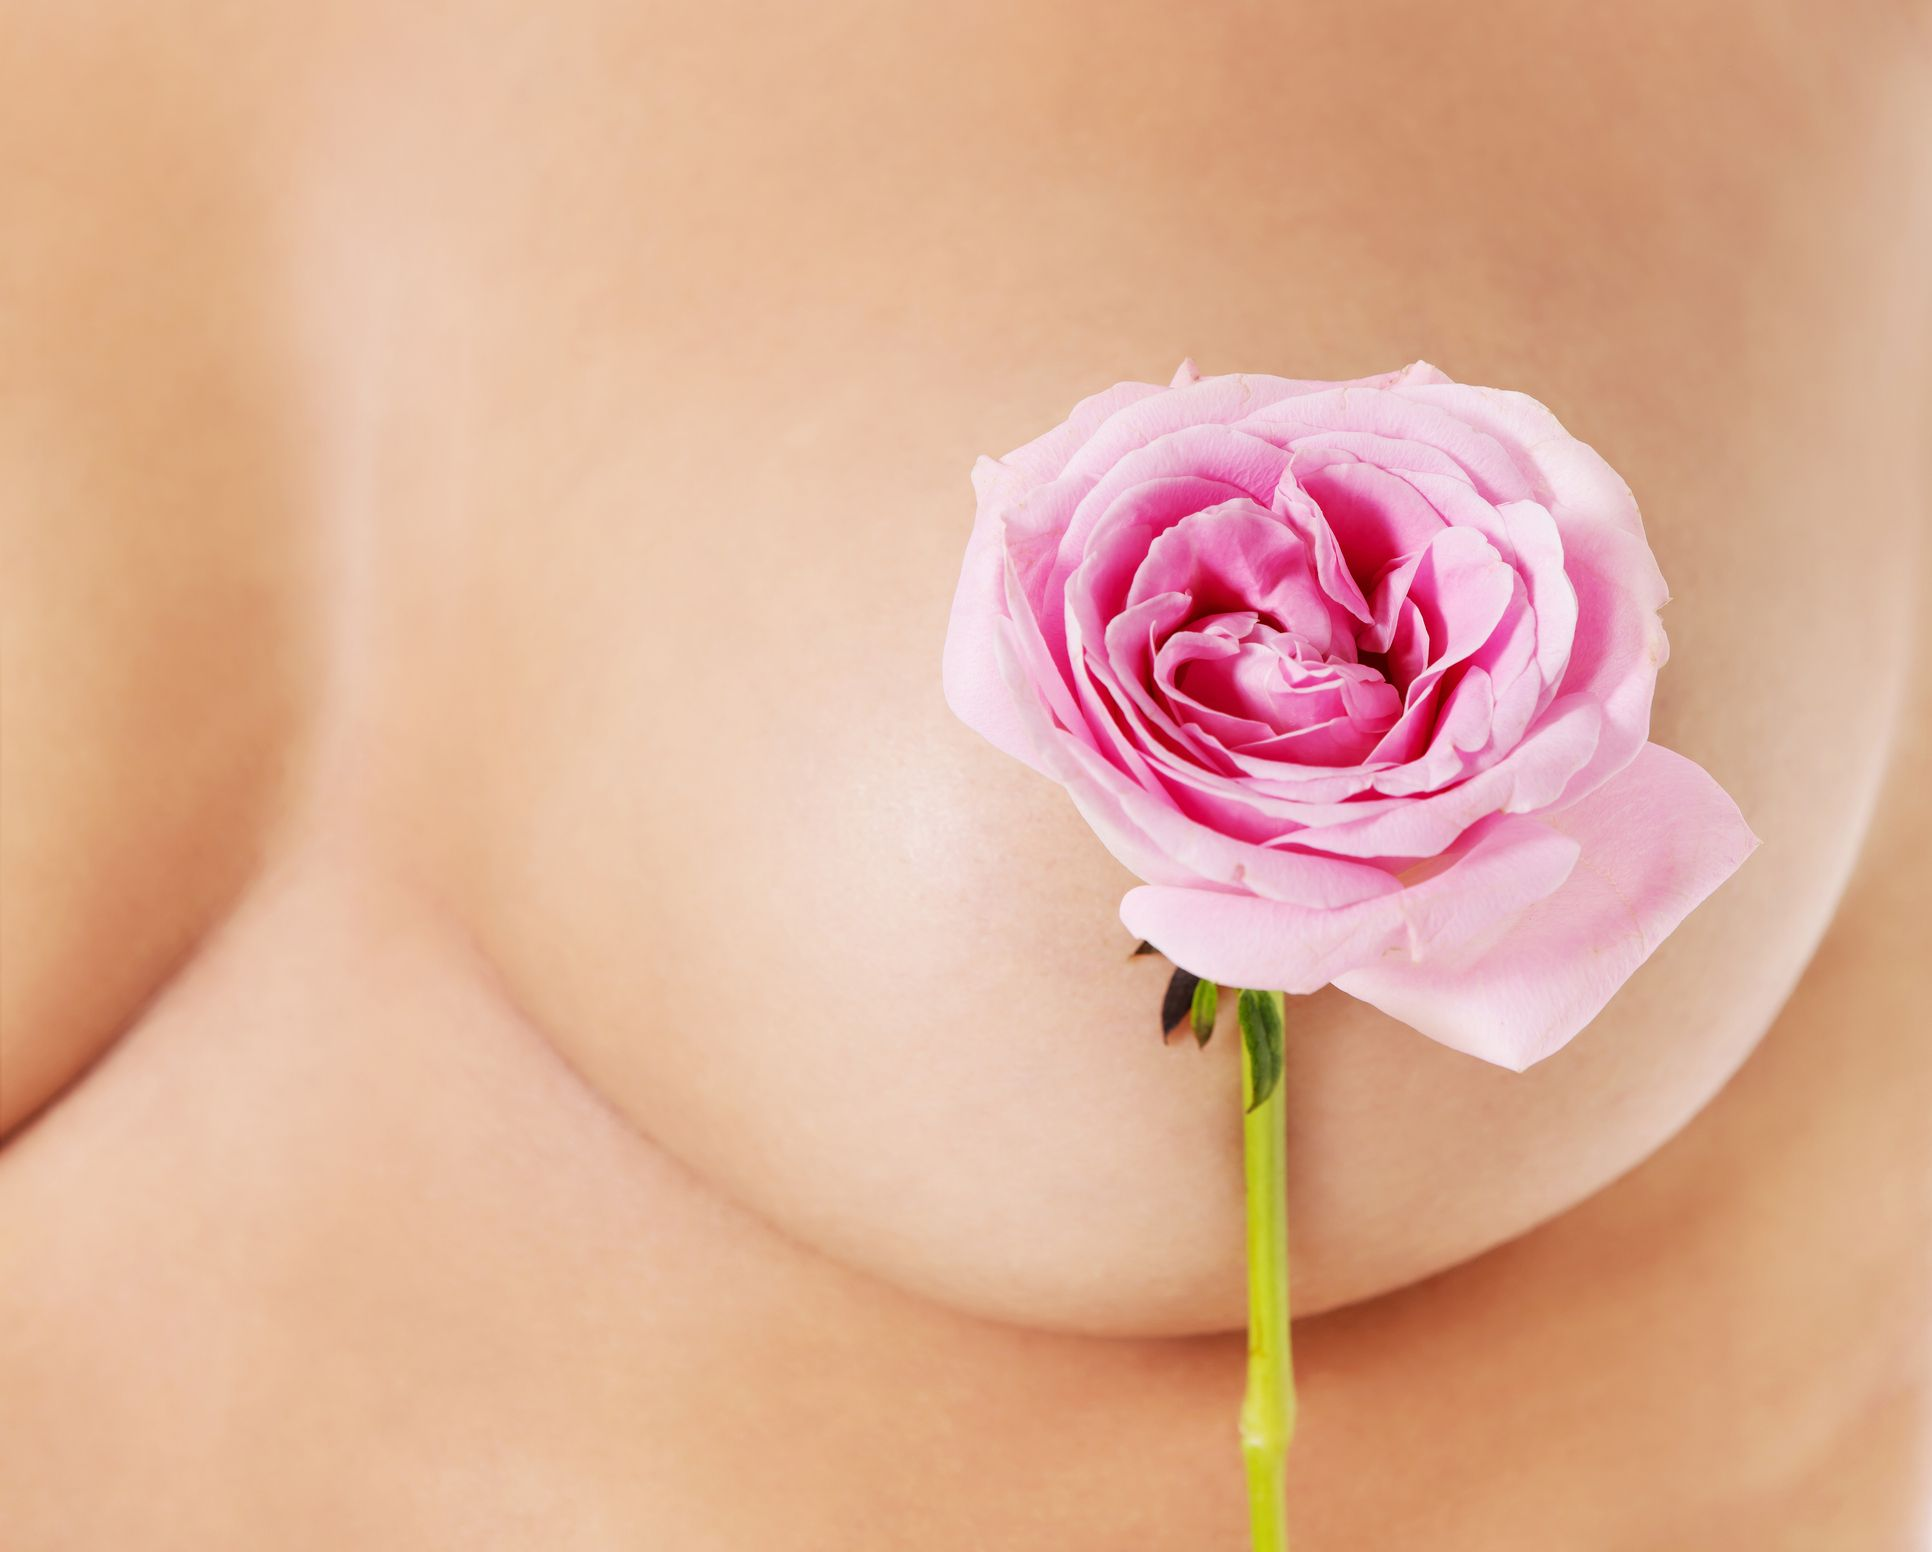 Everything you need to know about breast lumps